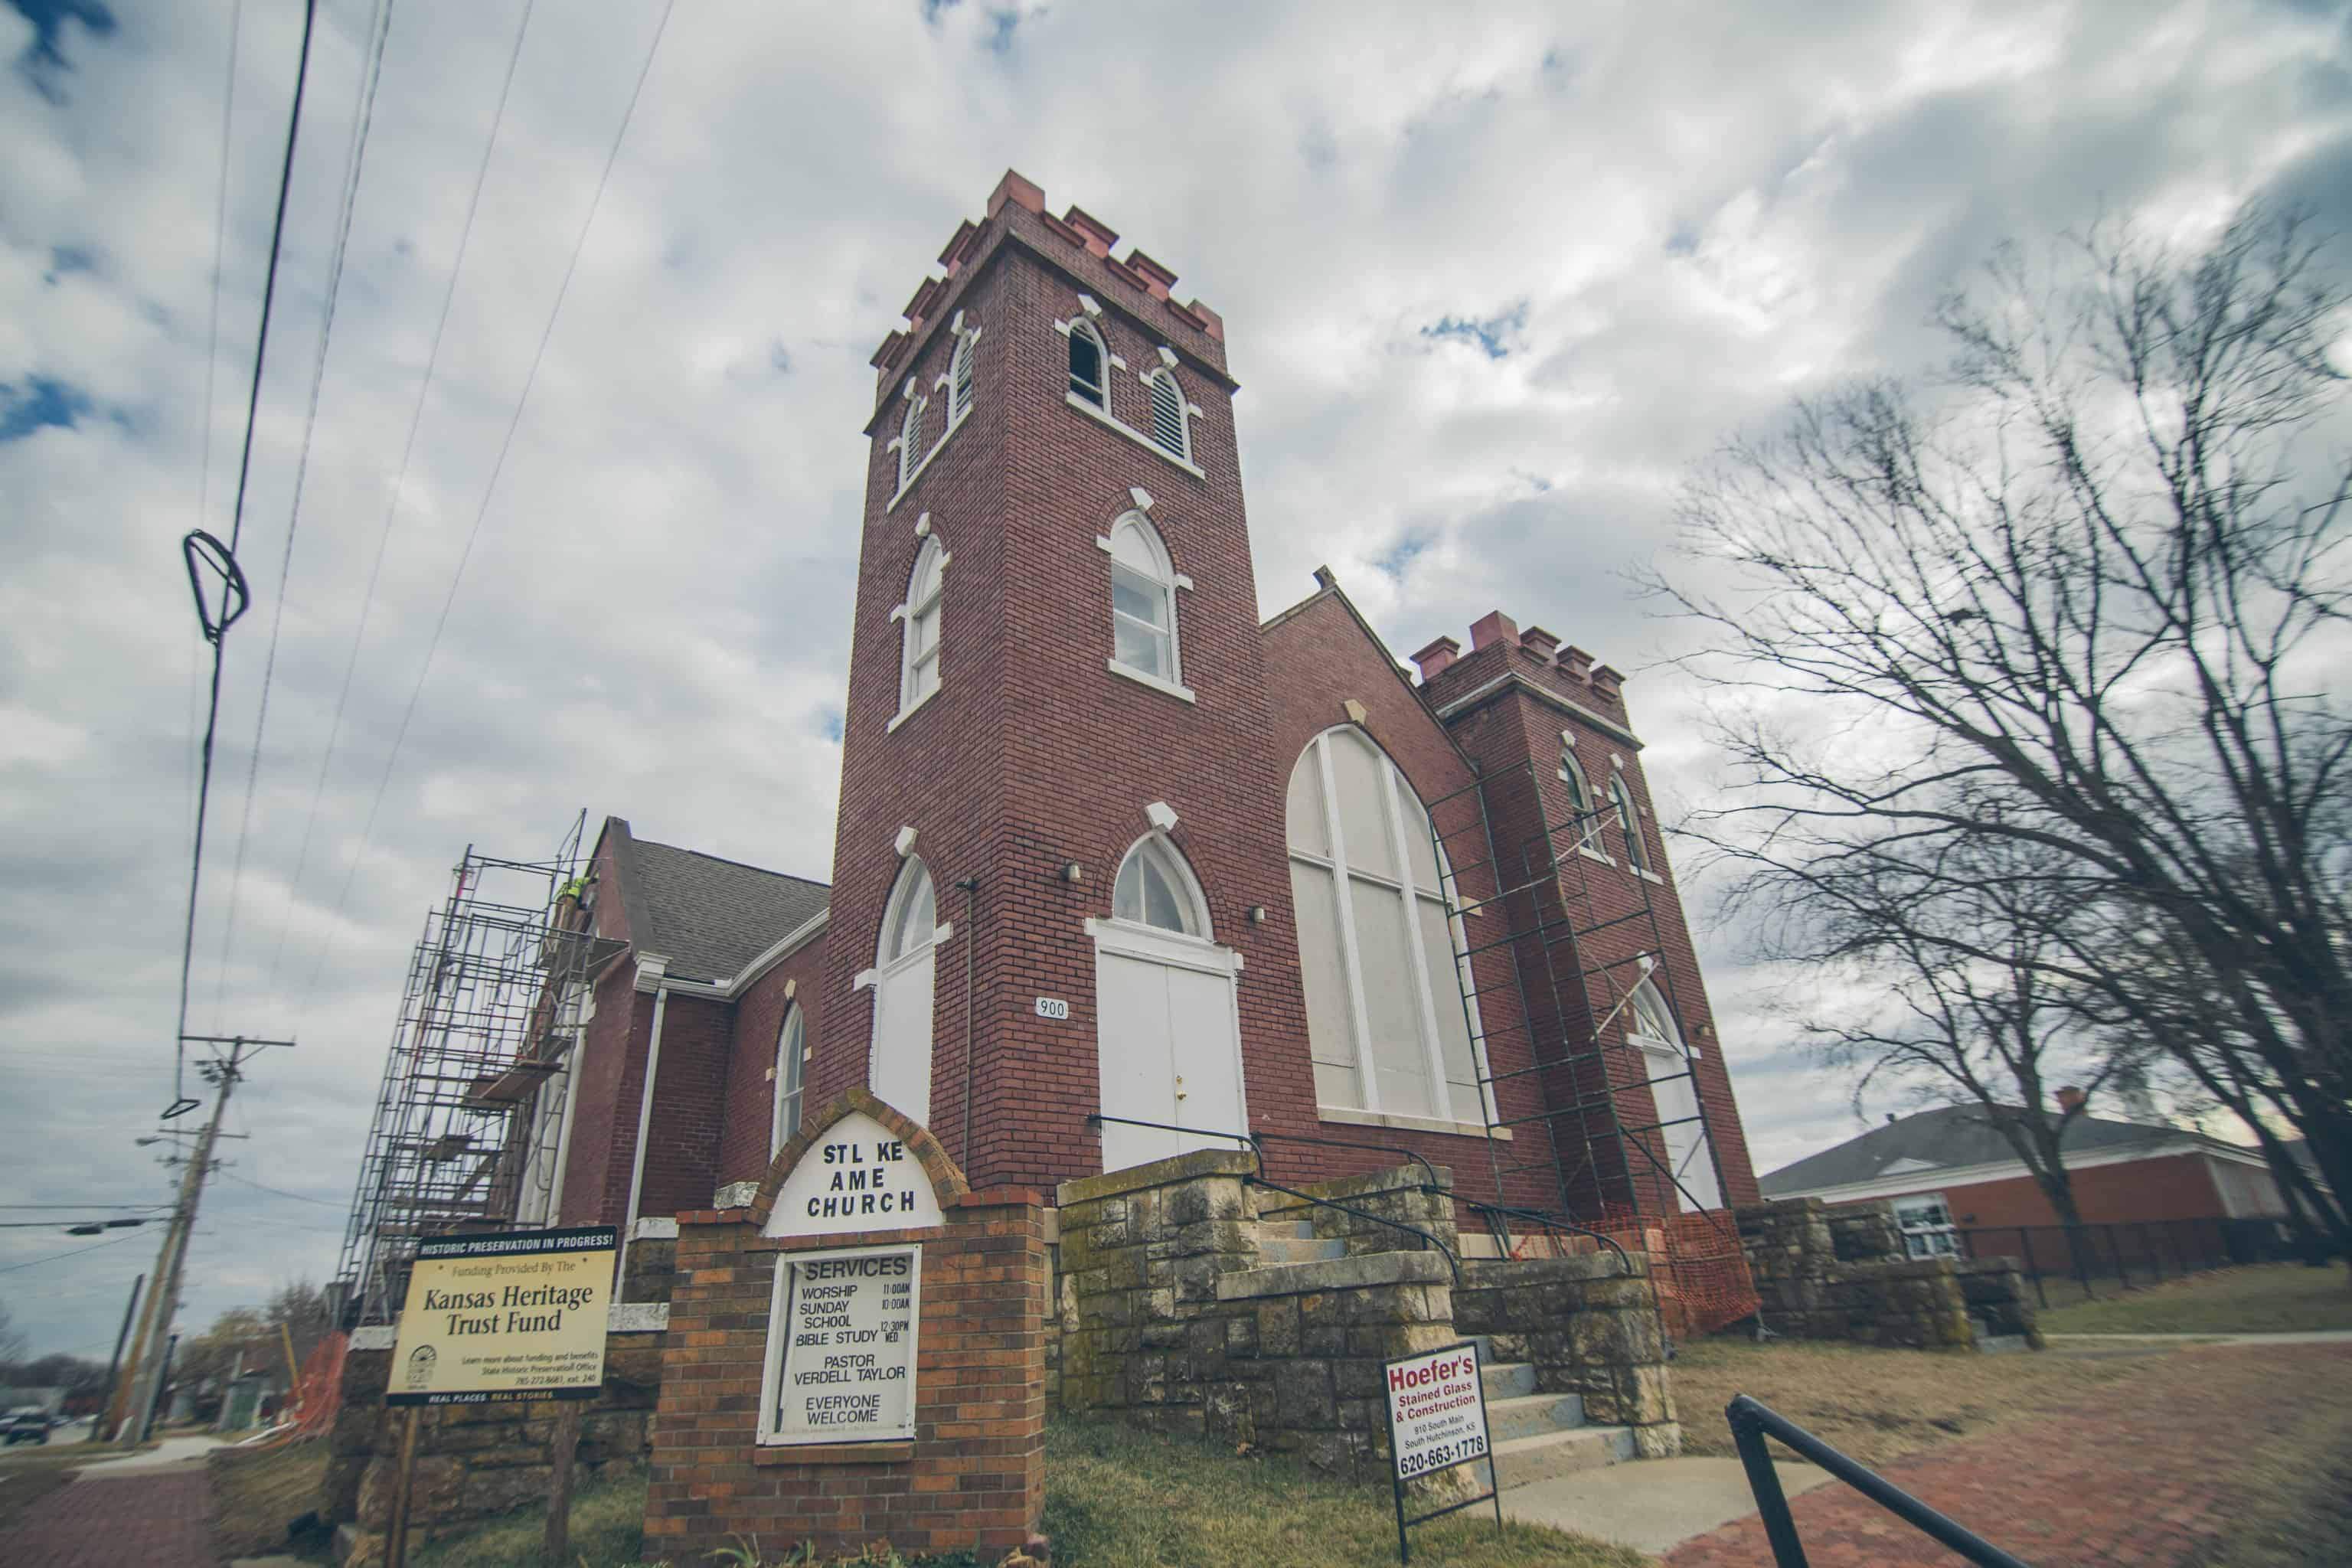 St. Luke AME Church in Lawrence, Kansas, was restored in 2020-2021 with masonry anchors.